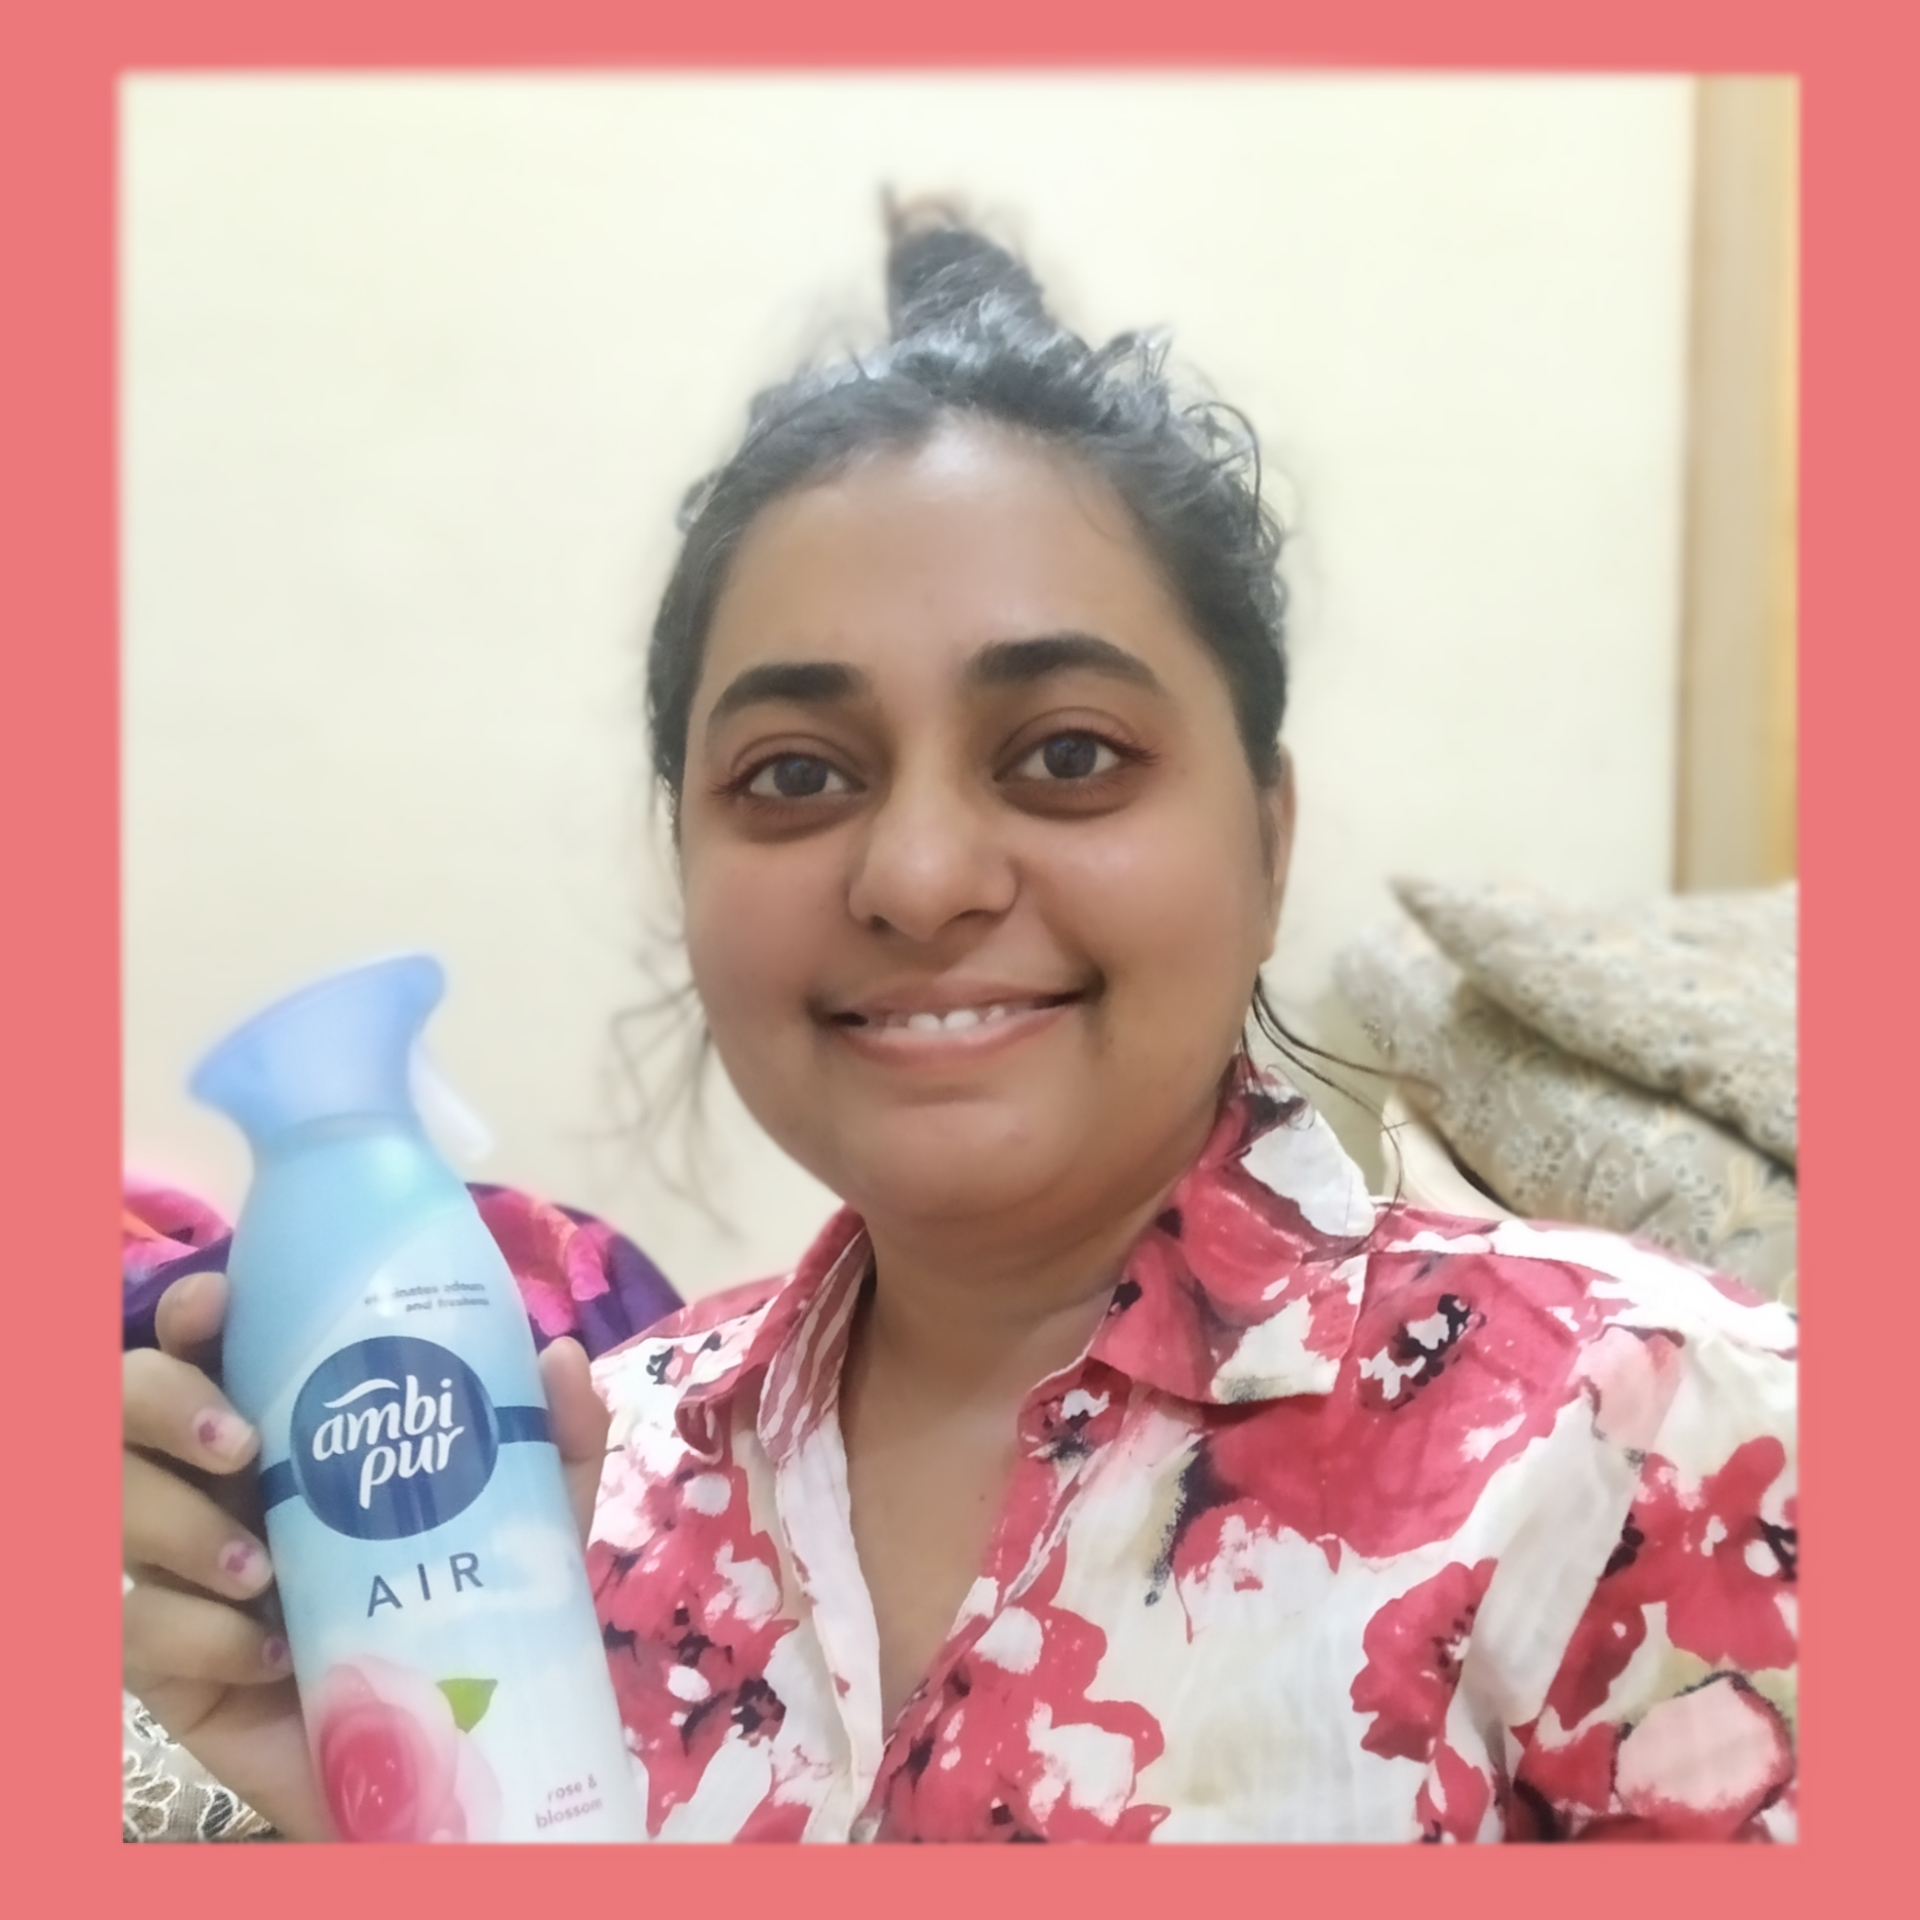 Ambi Pur Air Freshener – Rose and Blossom-Great way to freshen the clean feeling of house-By prachi_jagirdar